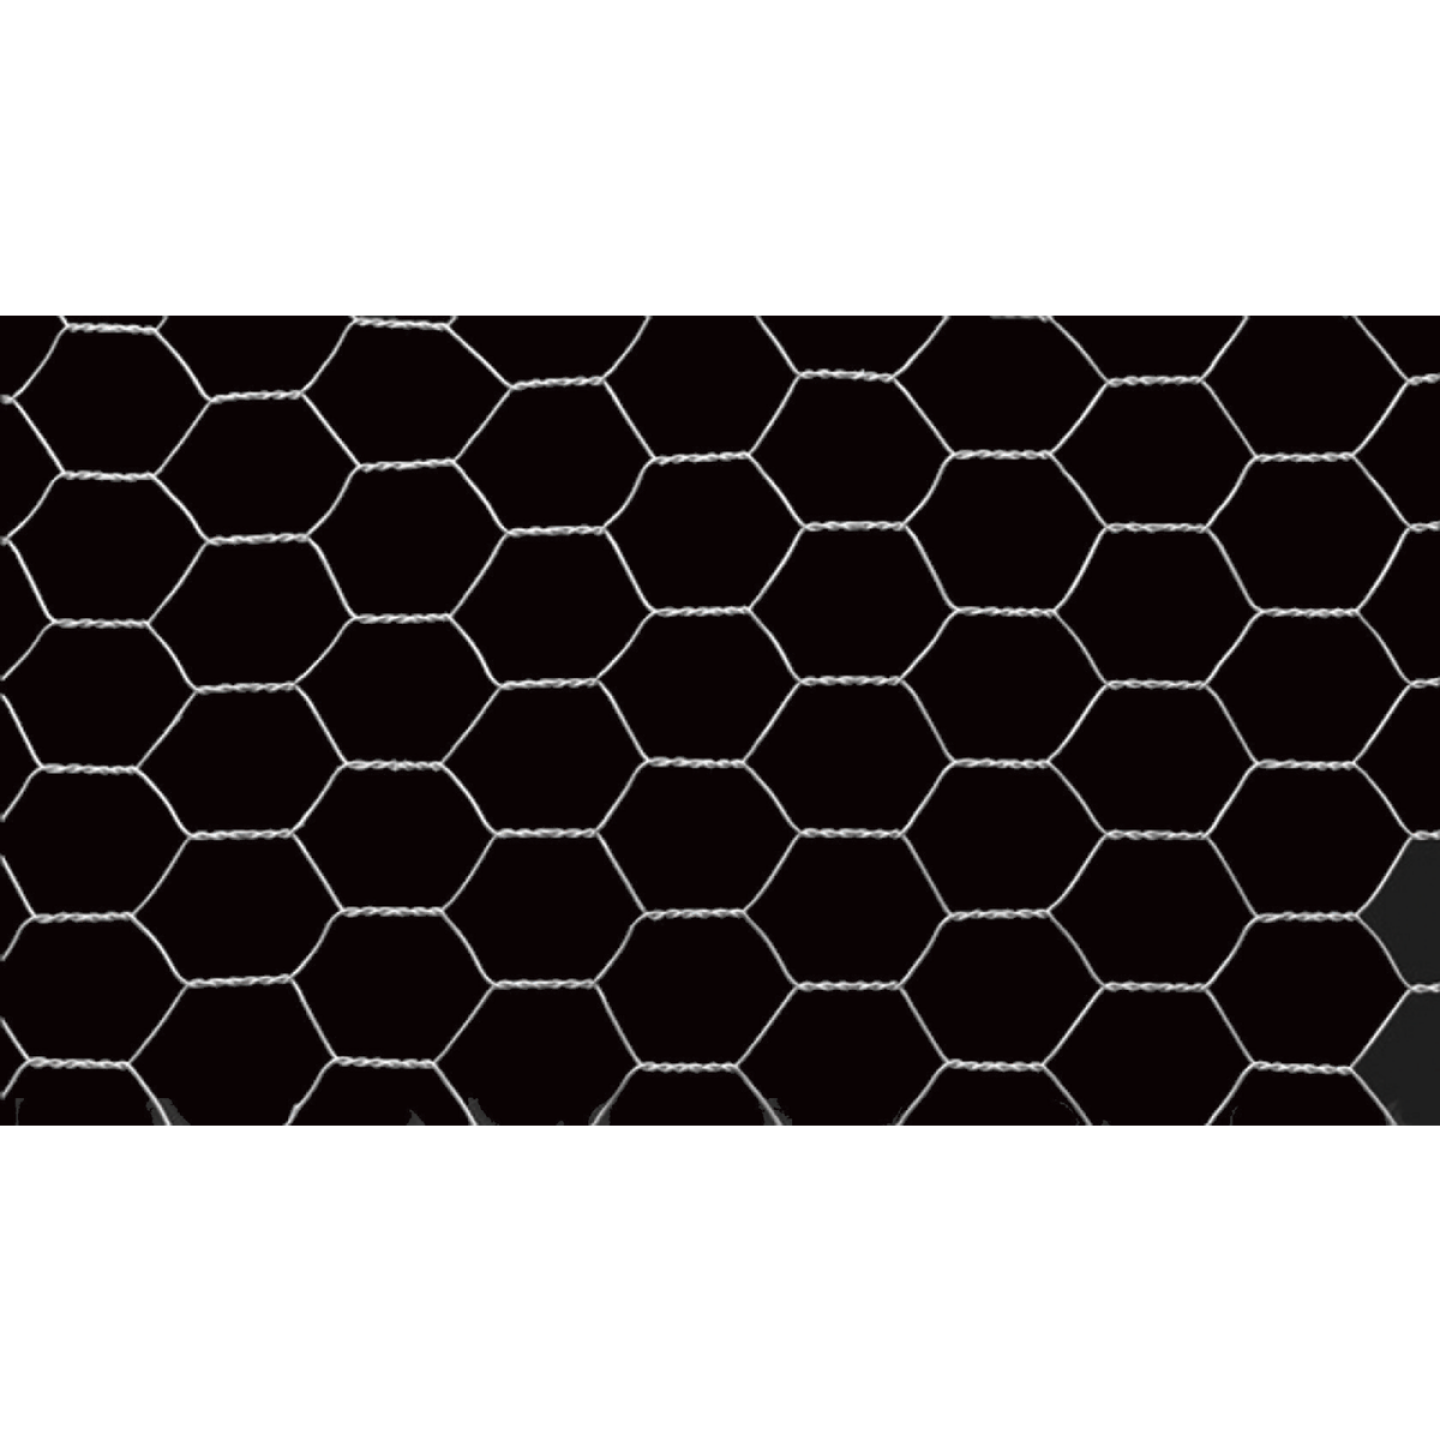 Do it 1 In. x 12 In. H. x 150 Ft. L. Hexagonal Wire Poultry Netting Image 2